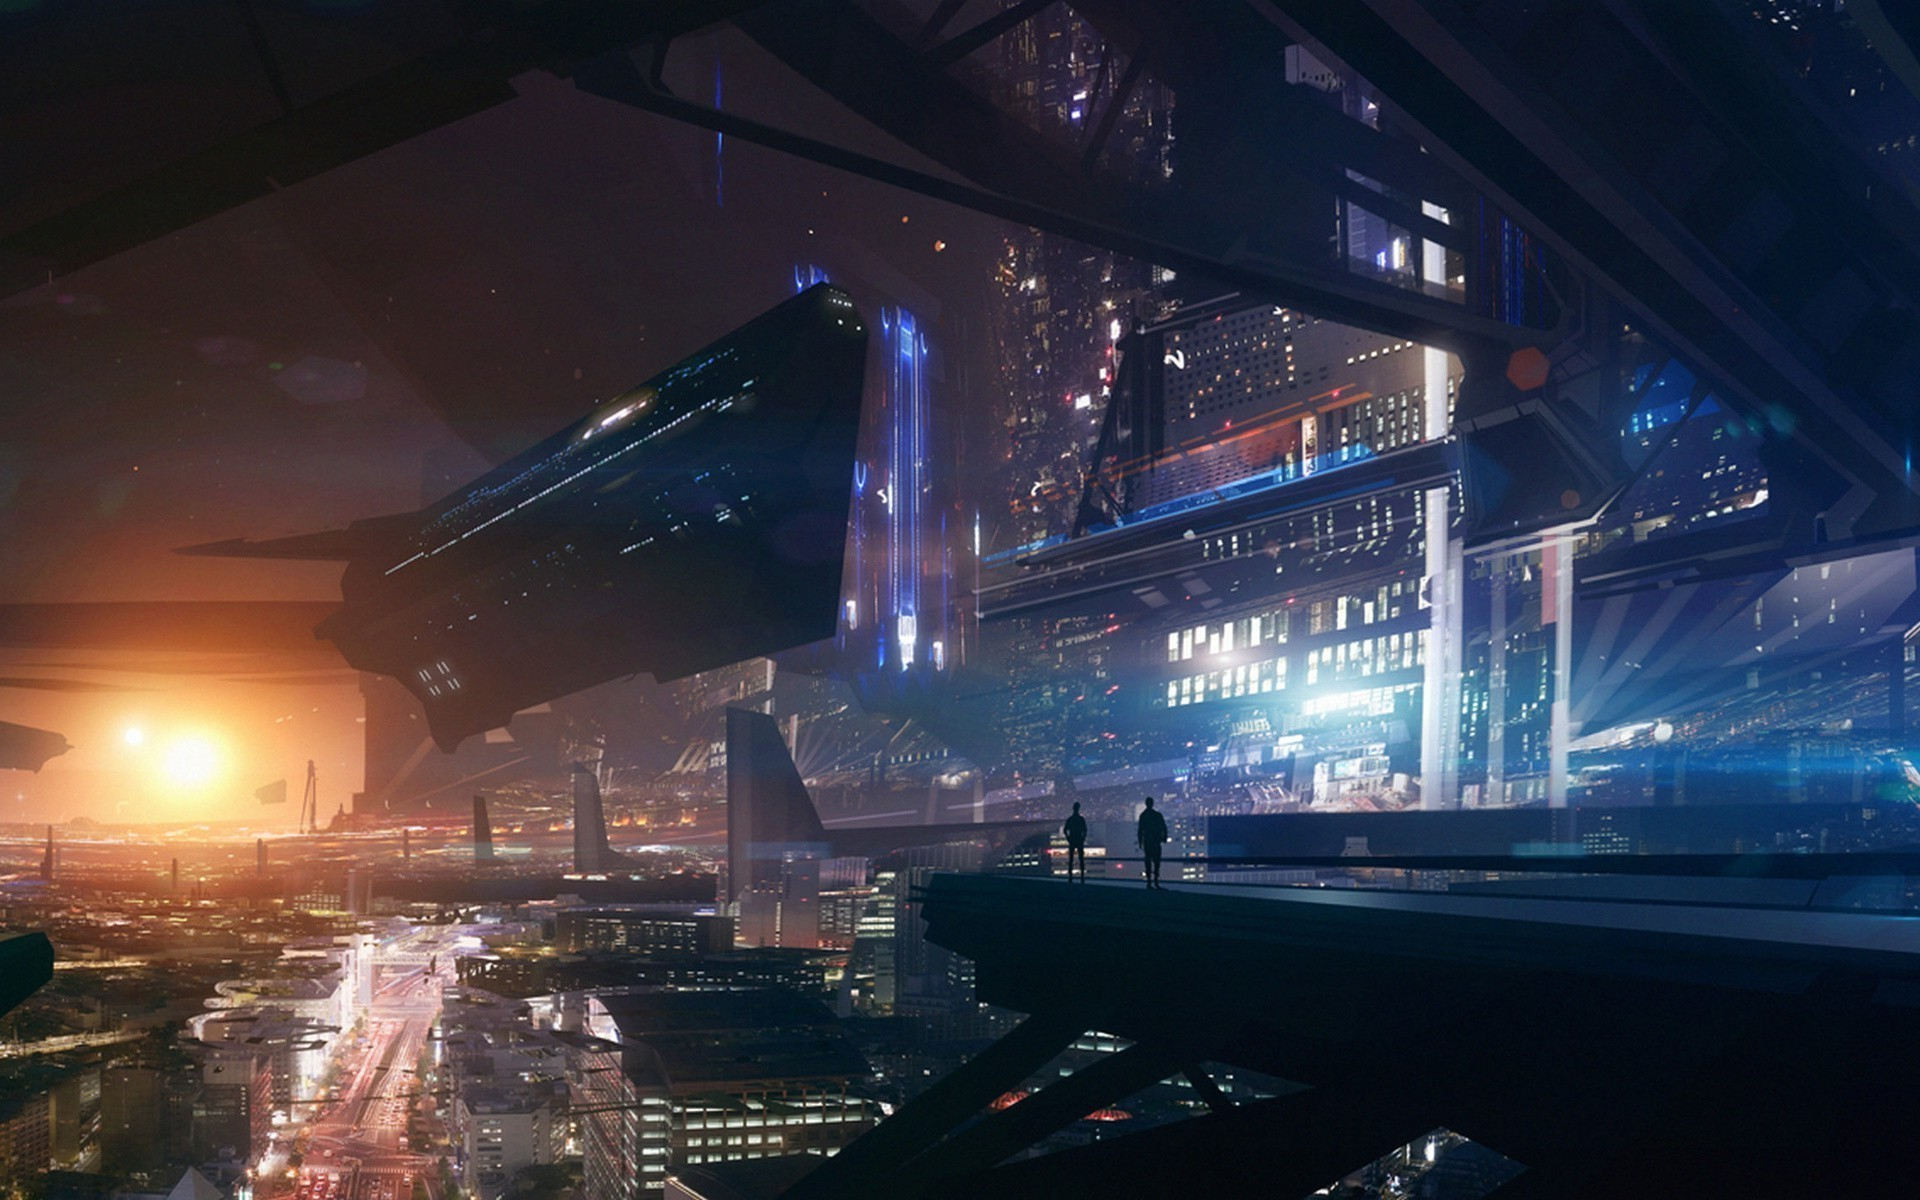 future City, Lights, Space, Futuristic, Spaceship, Fantasy Art, Mass Effect  Wallpapers HD / Desktop and Mobile Backgrounds